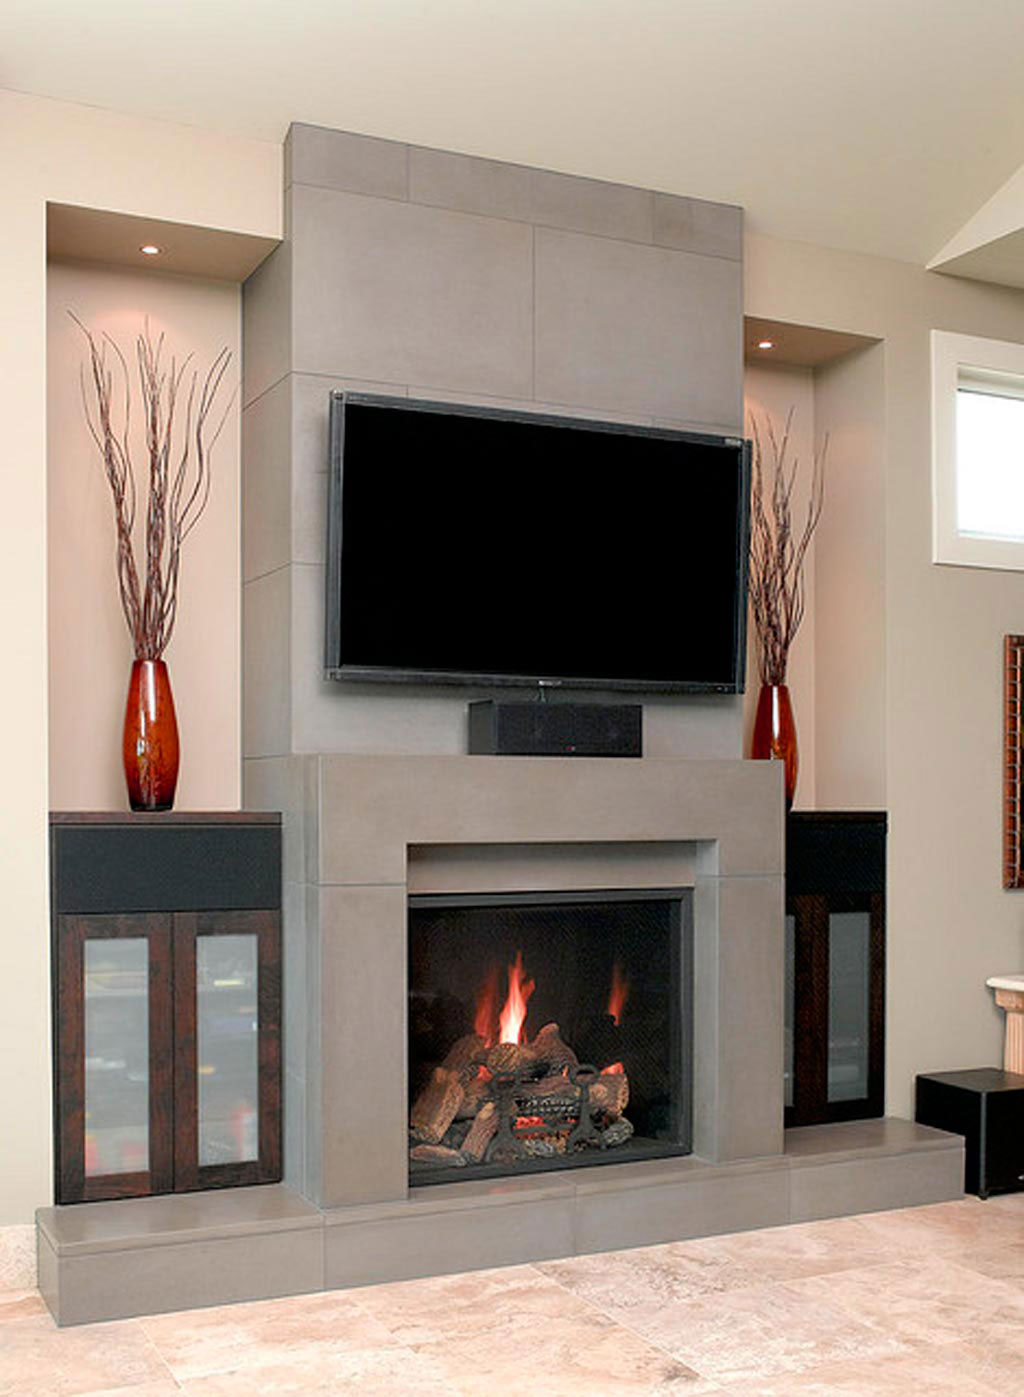 Beautiful Fireplace Mantels Ideas to Warm Your Home in the Winter - MidCityEast